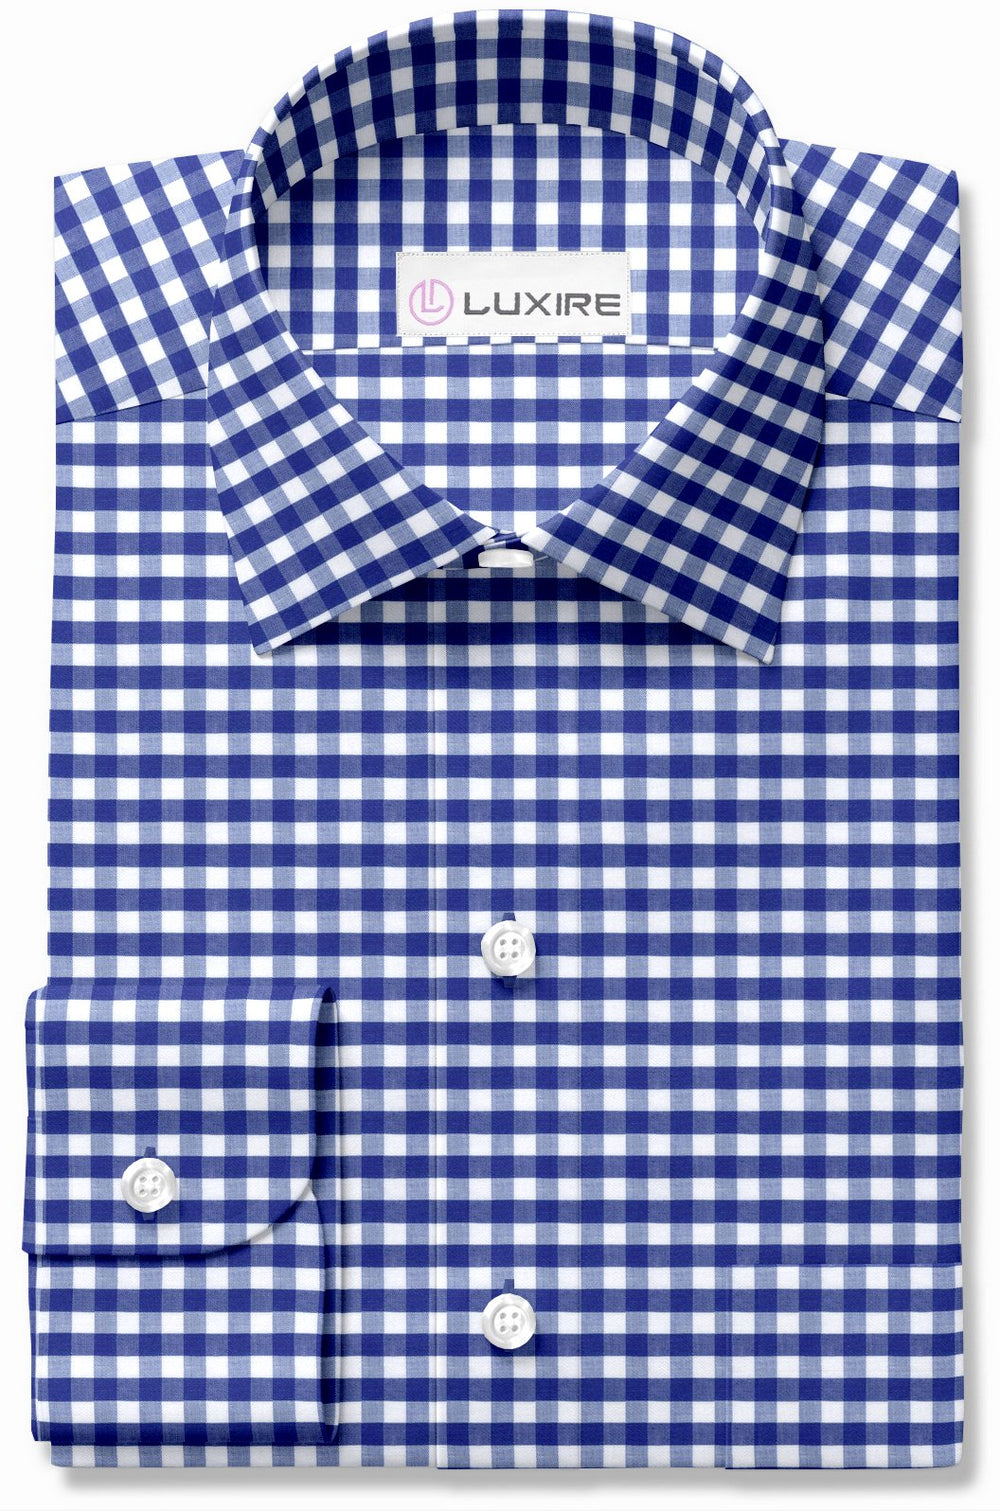 Cotton Linen - Blue White Gingham